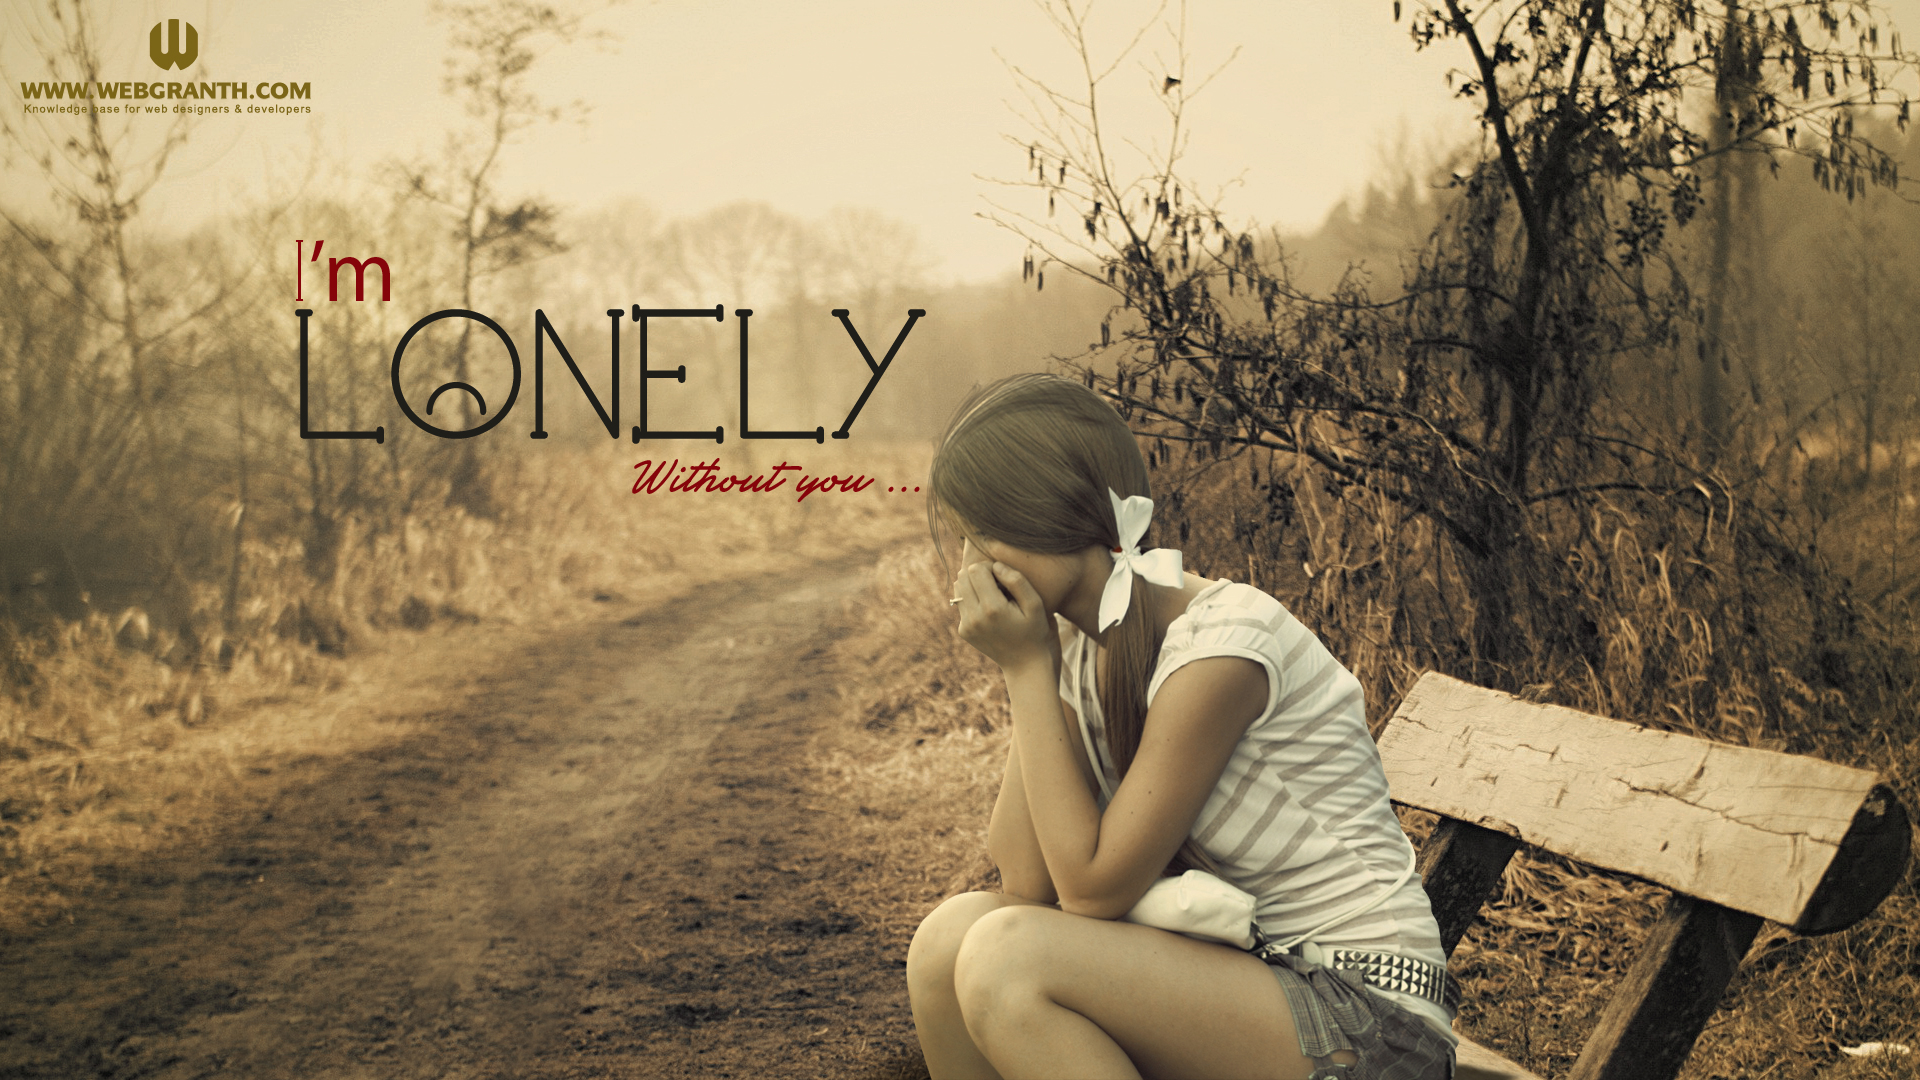 Alone Sad Wallpaper Download HD Alone Wallpapers   Webgranth 1920x1080